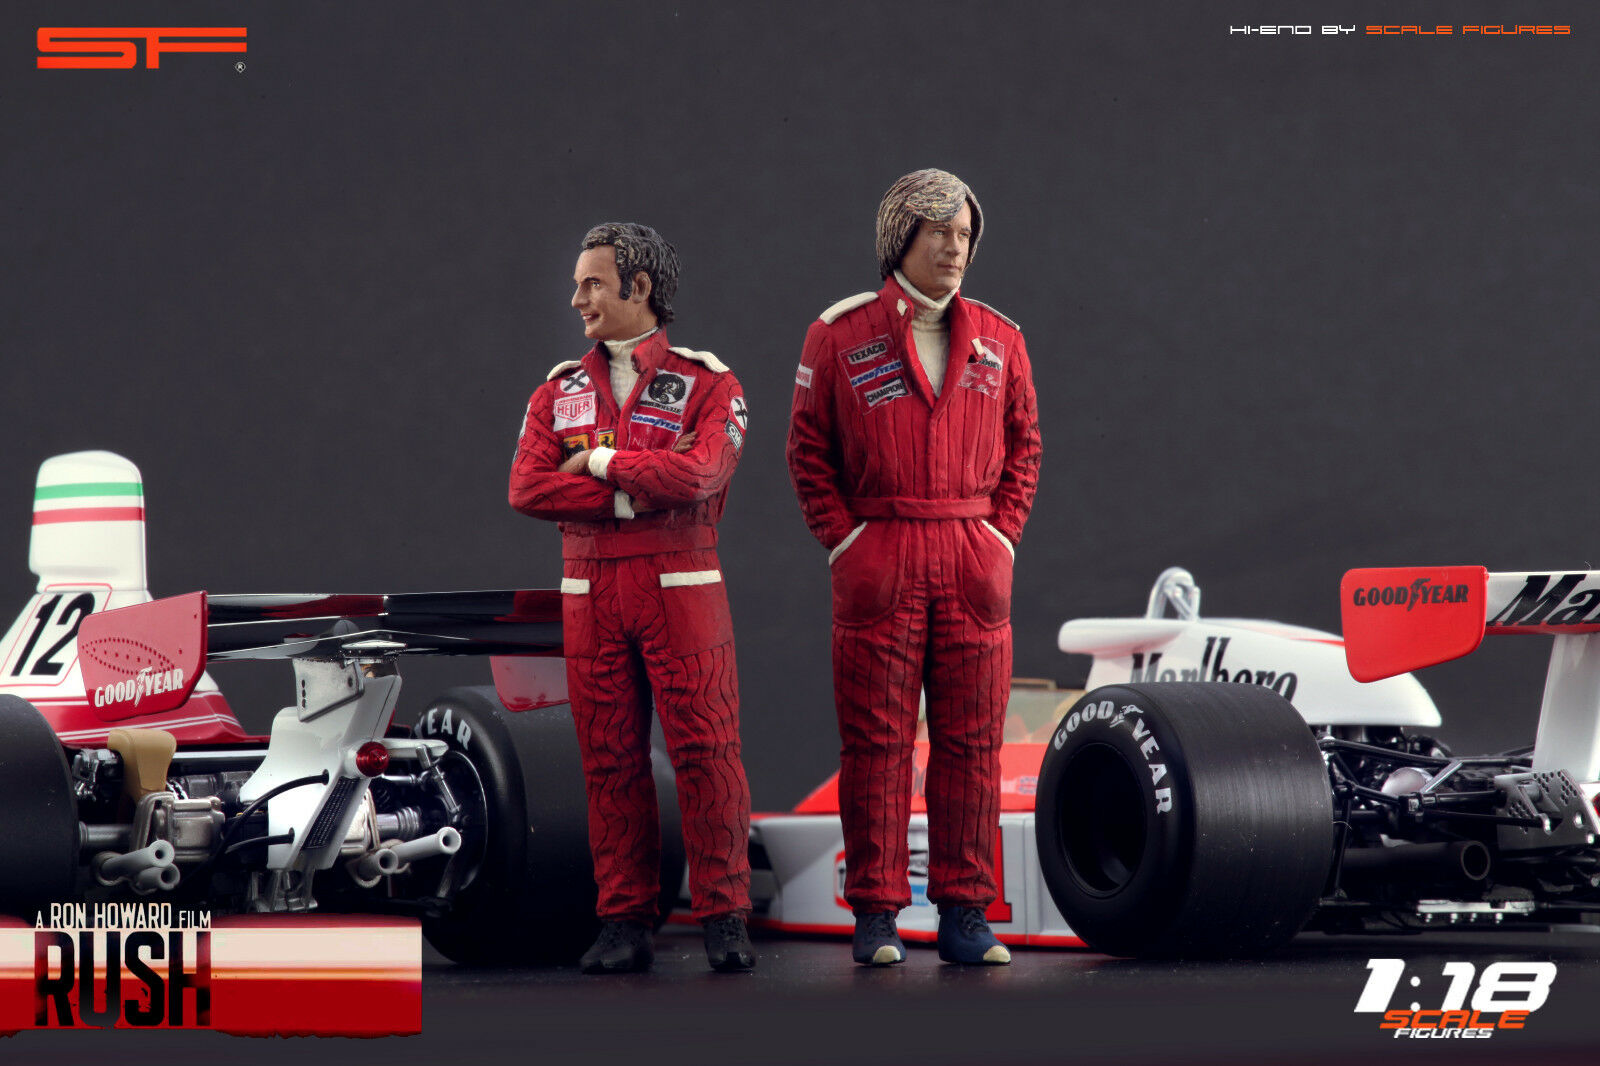 1 18 Niki Lauda & James Hunt VERY RARE    figurines NO CARS    for RUSH cars